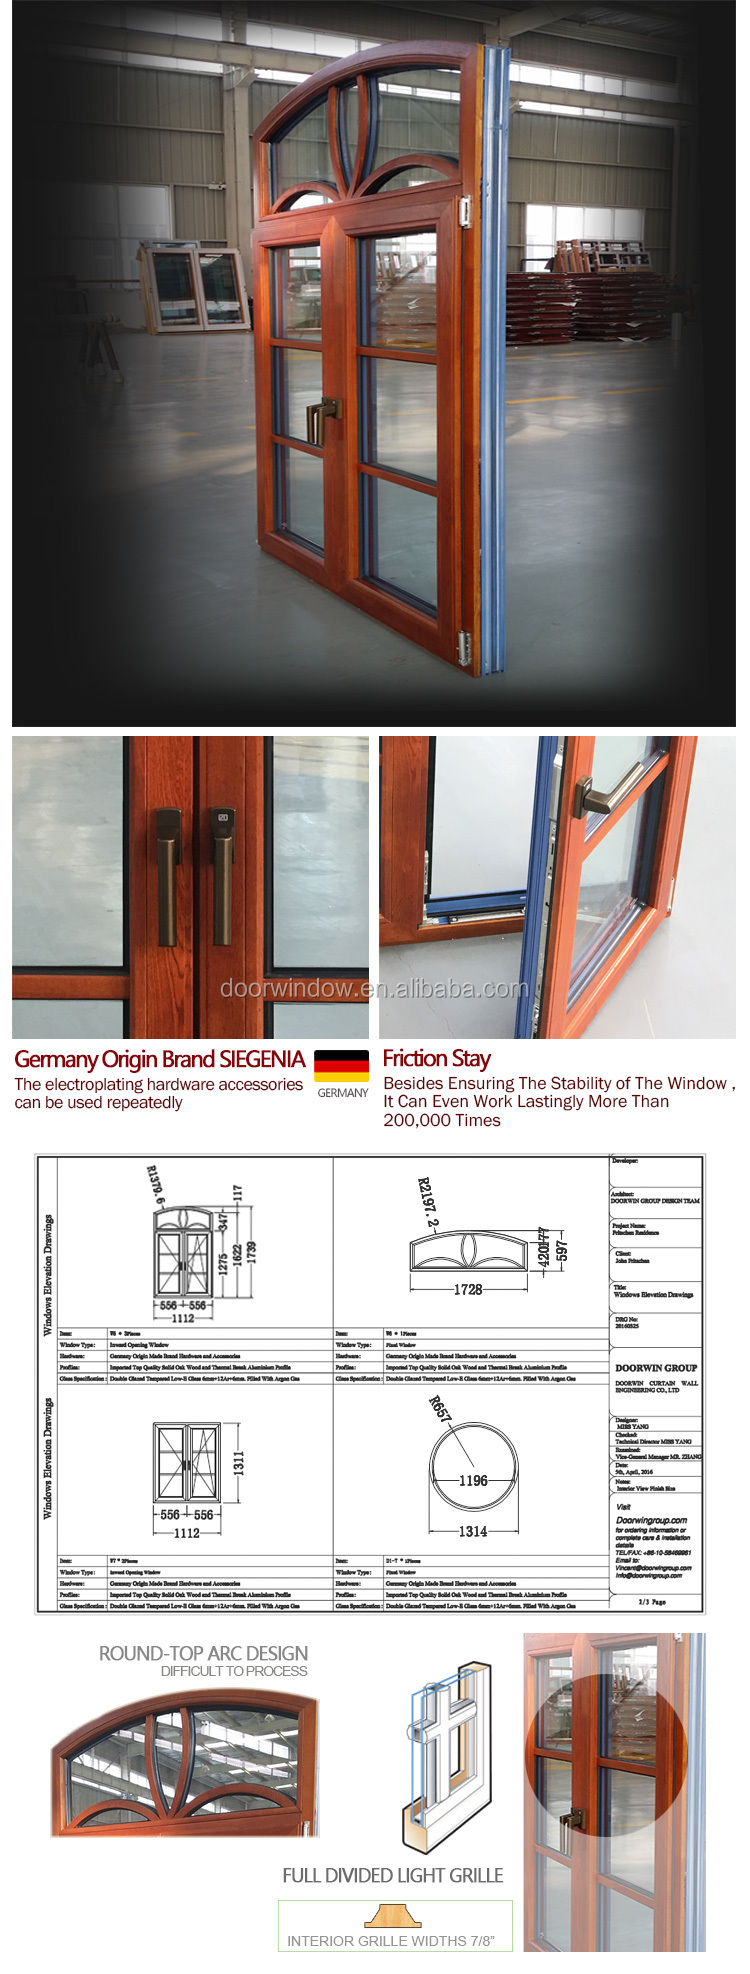 Safety window grill design round that open molding